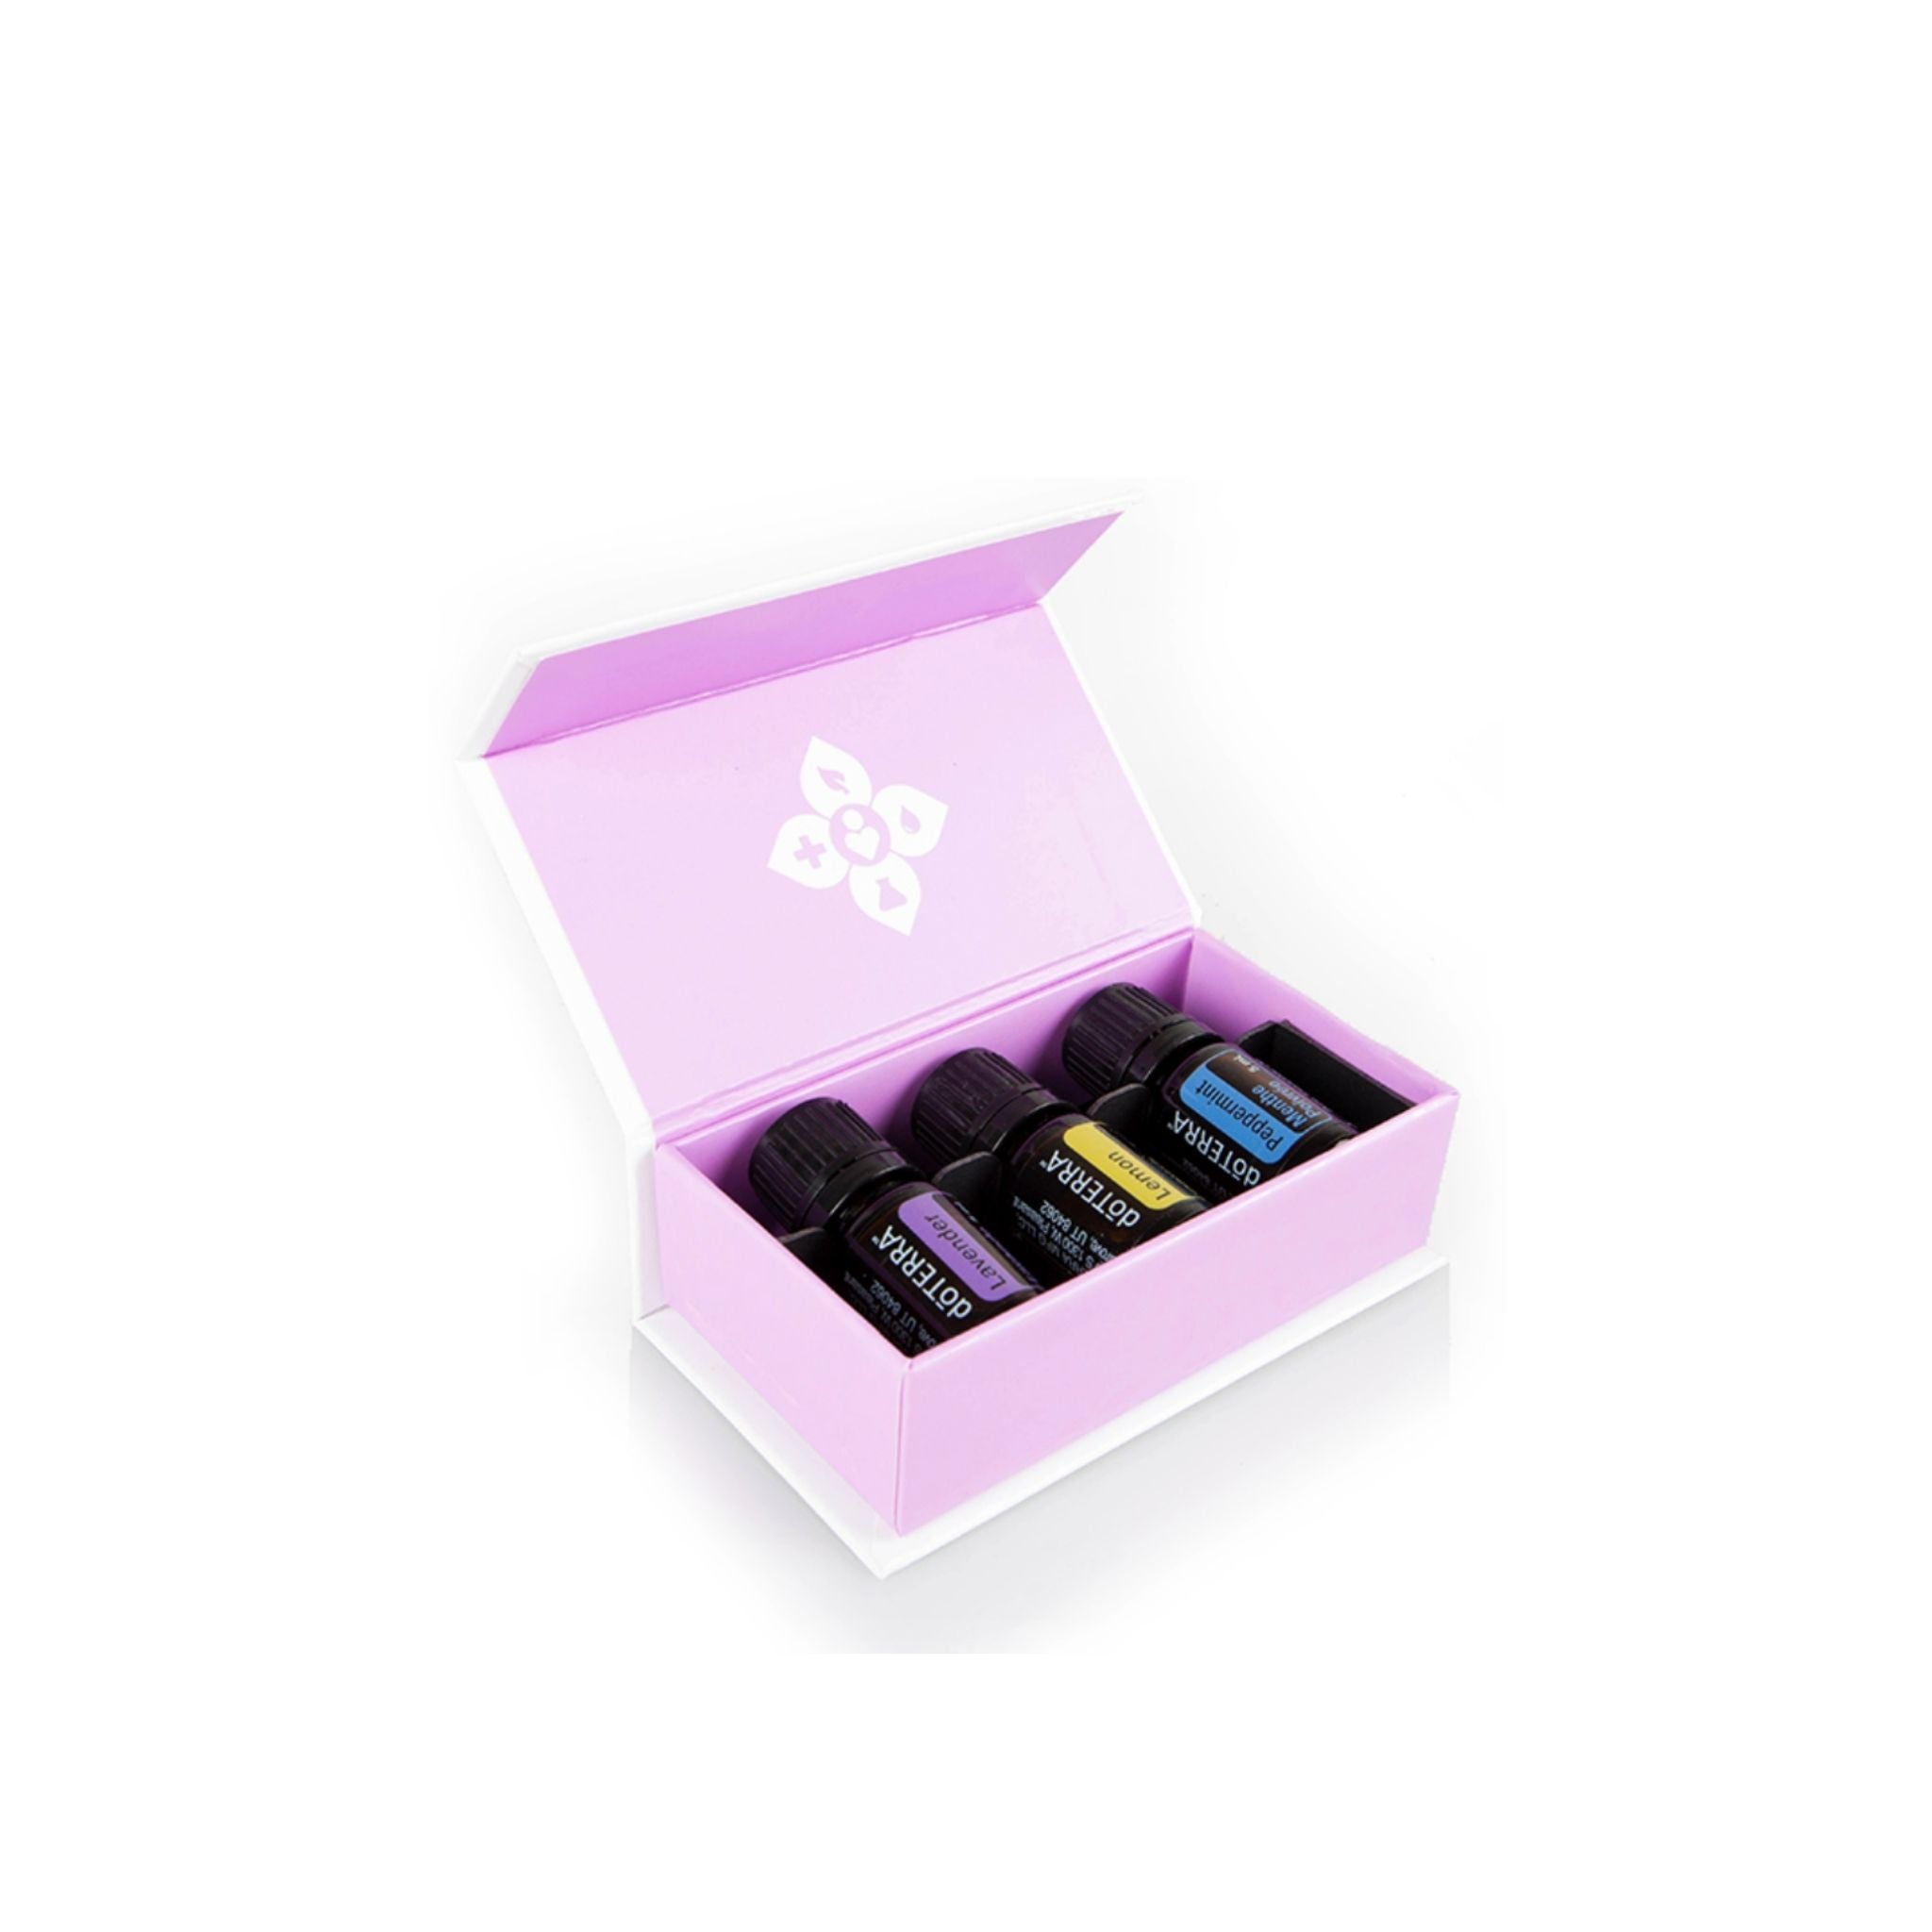 Introductory Essential Oil Kit - doTerra (Lavender, Lemon, Peppermint) - 5mL each - doTerra